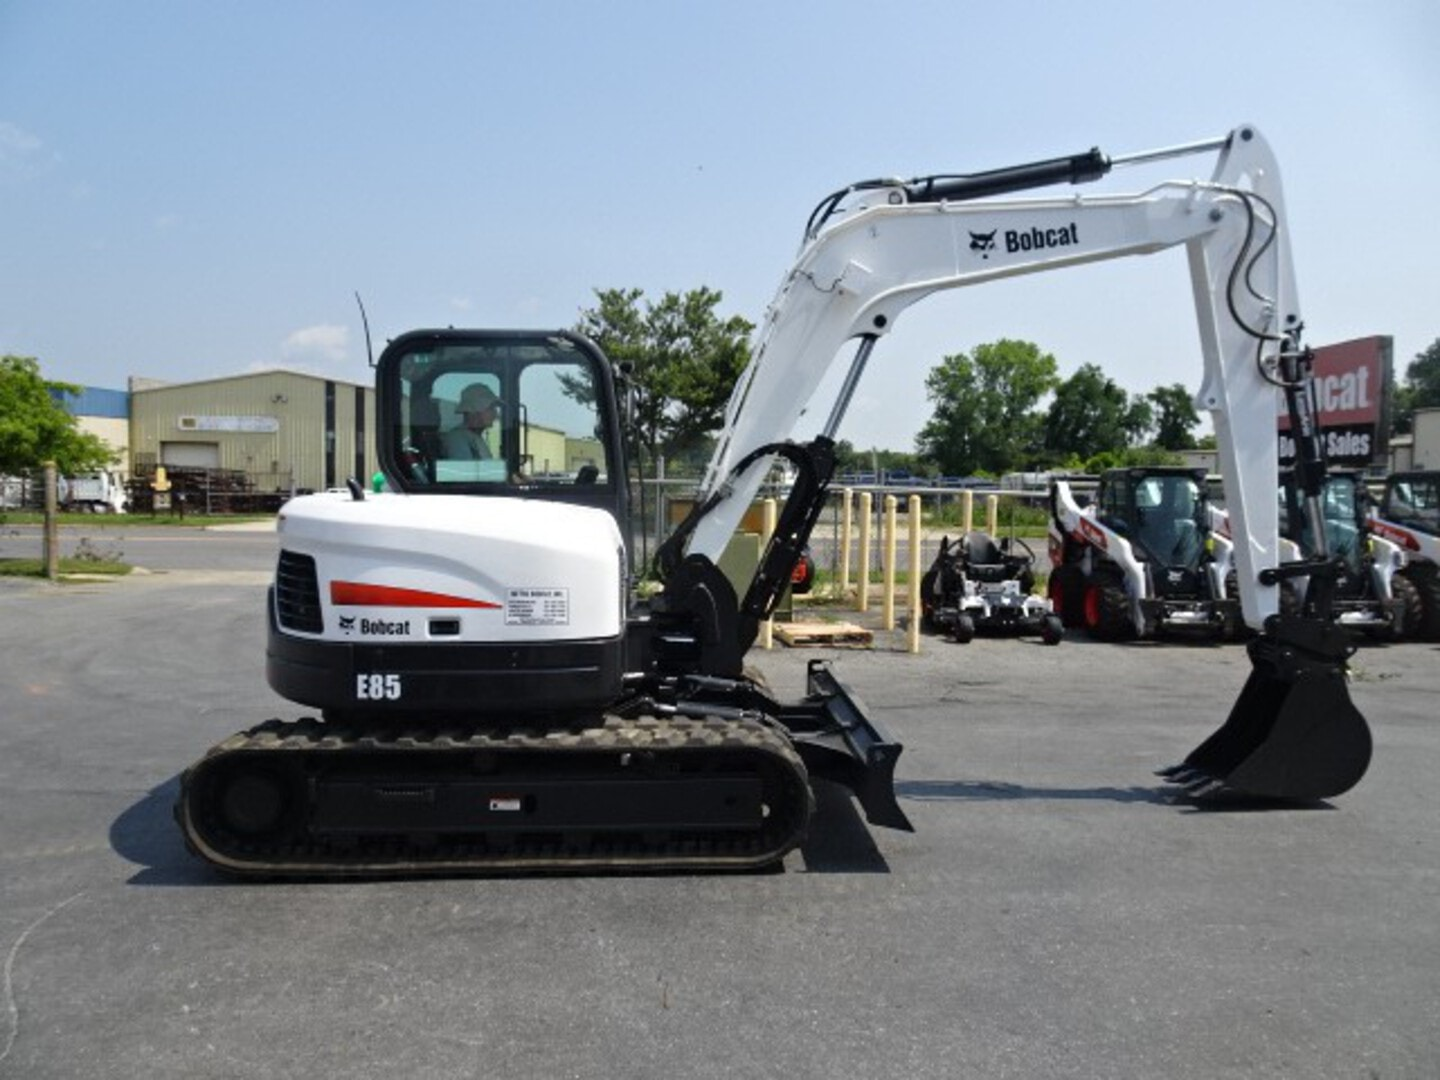 Used, 2017, Bobcat, E85 COMPACT EXCAVATOR 59.4 HP Diesel Engine (Tier 4) - M SERIES - PIN GRABBER W/ 2 BUCKETS Two-Speed - 18,977 lbs. Operating Weight - Deluxe High Back Cloth Suspension Seat - 1311 Hours!, Excavators